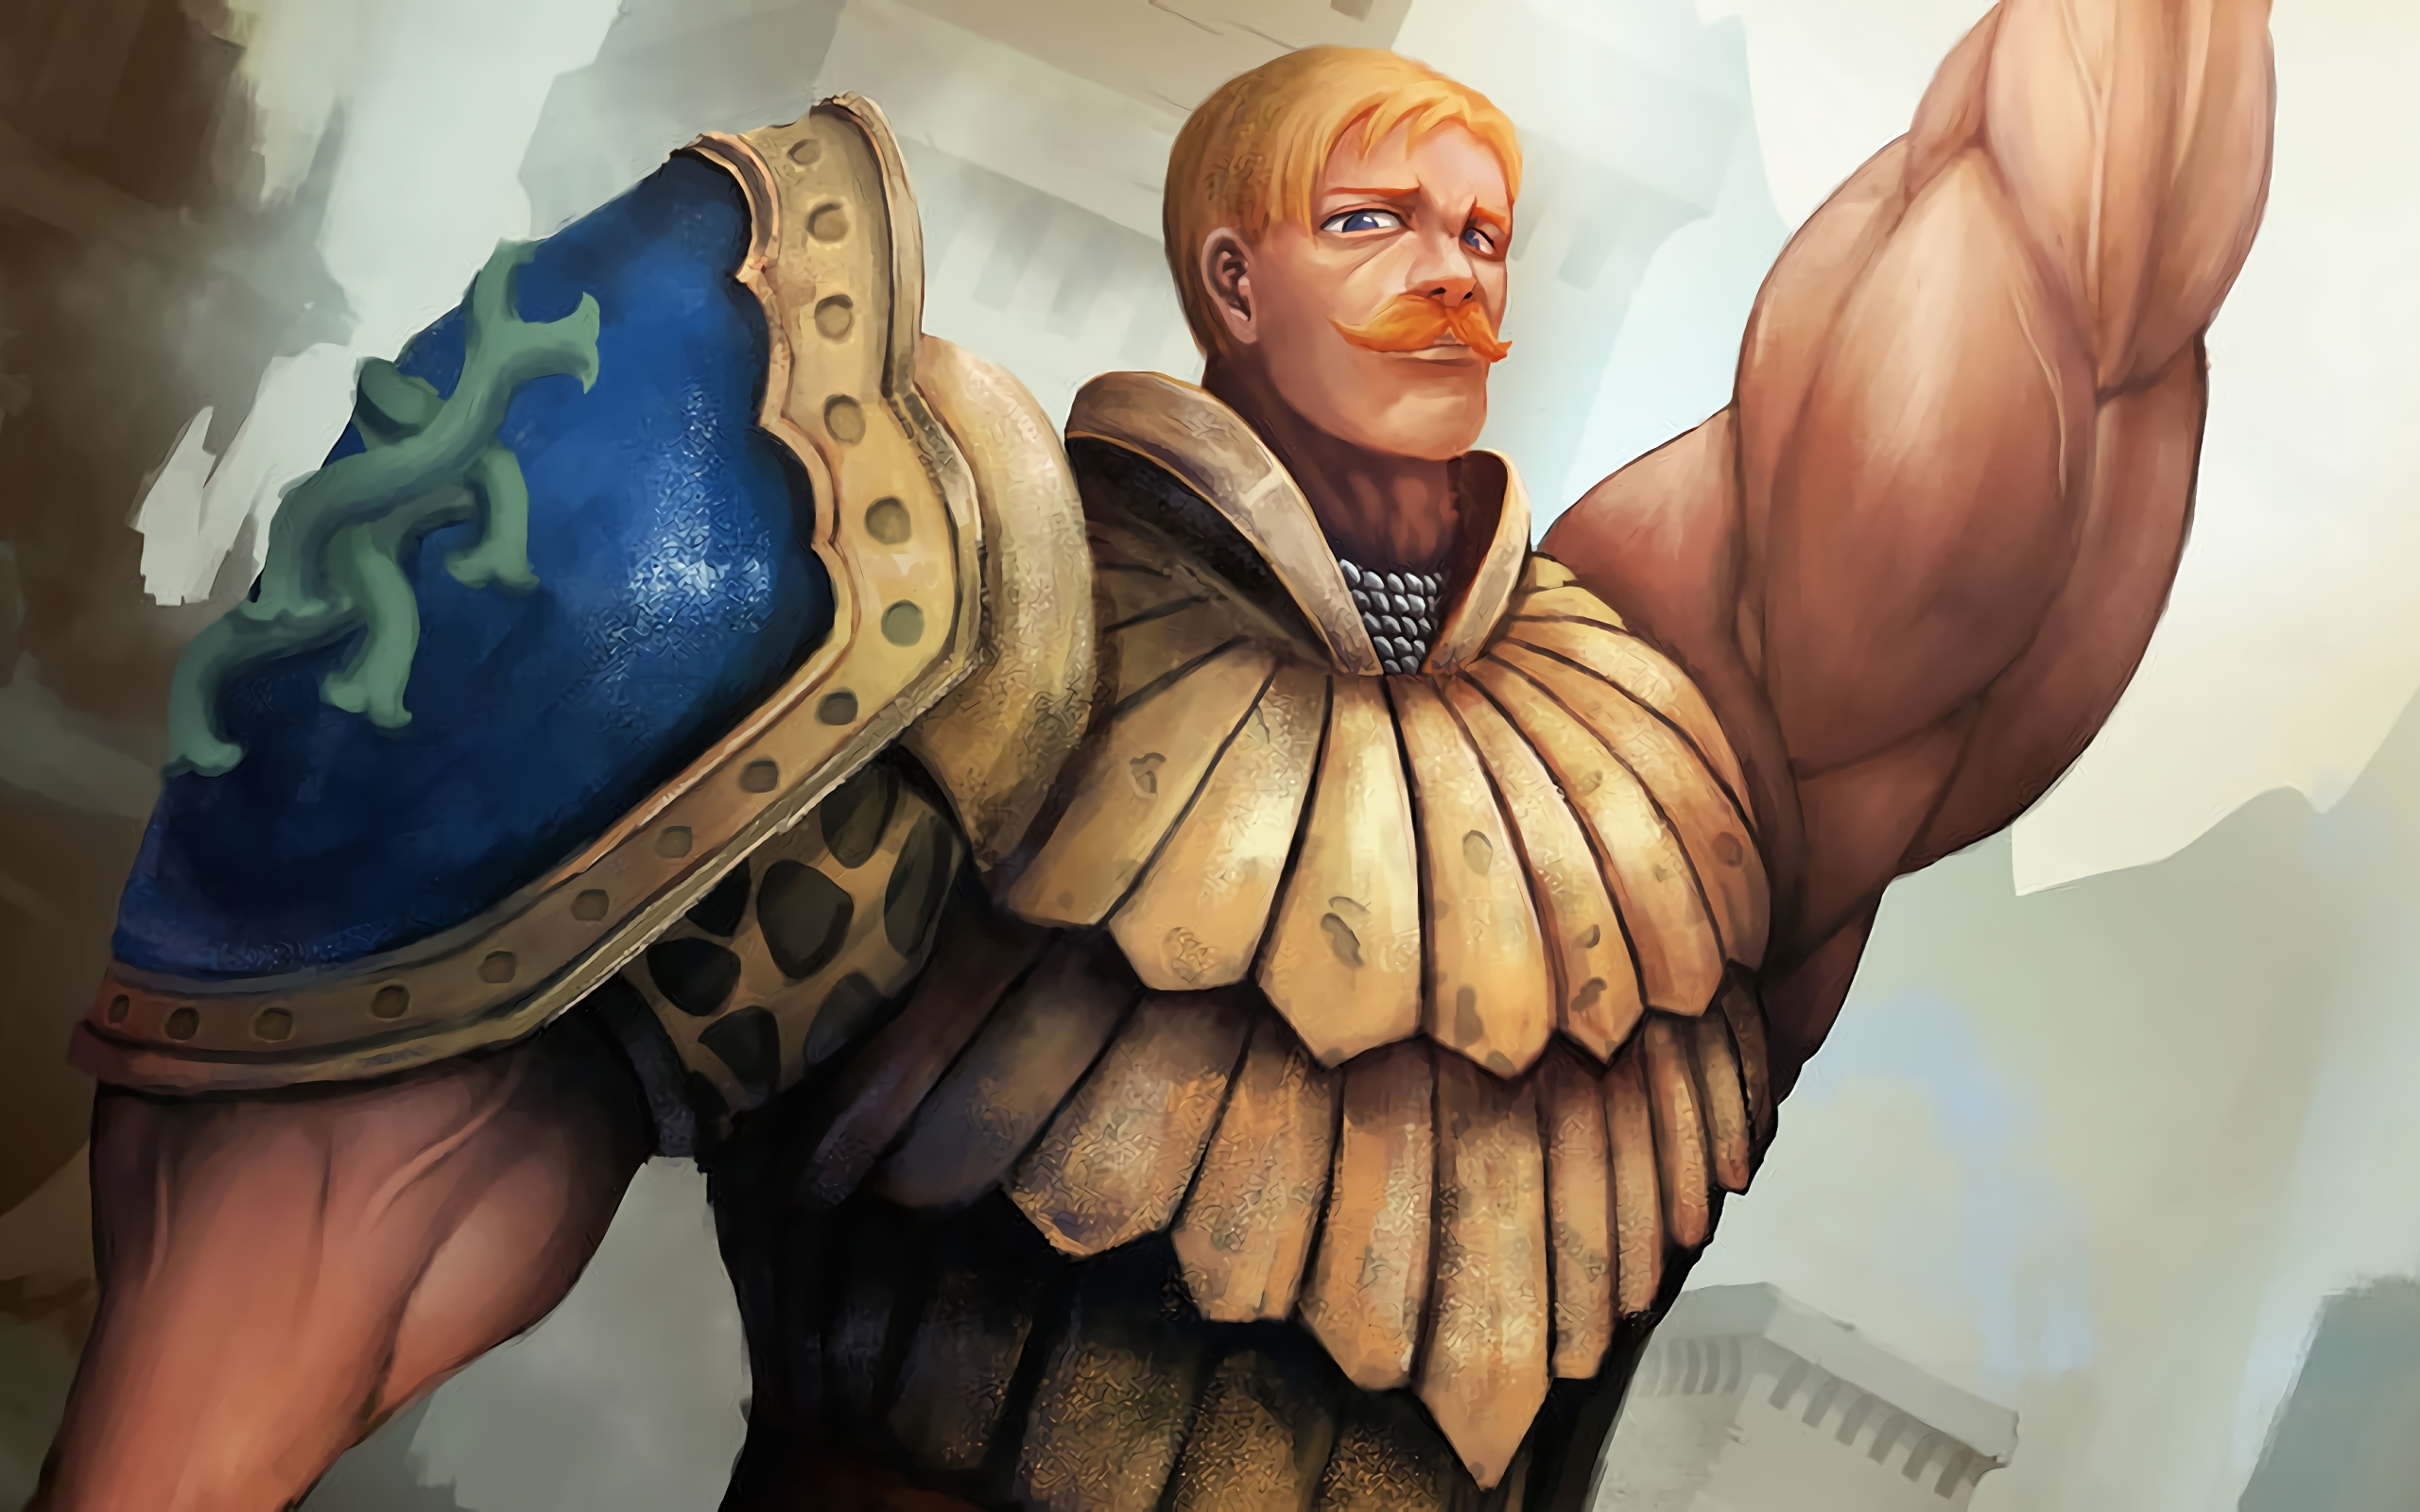 Wallpaper Of Escanor Anime The Seven Deadly Sins Background Hd